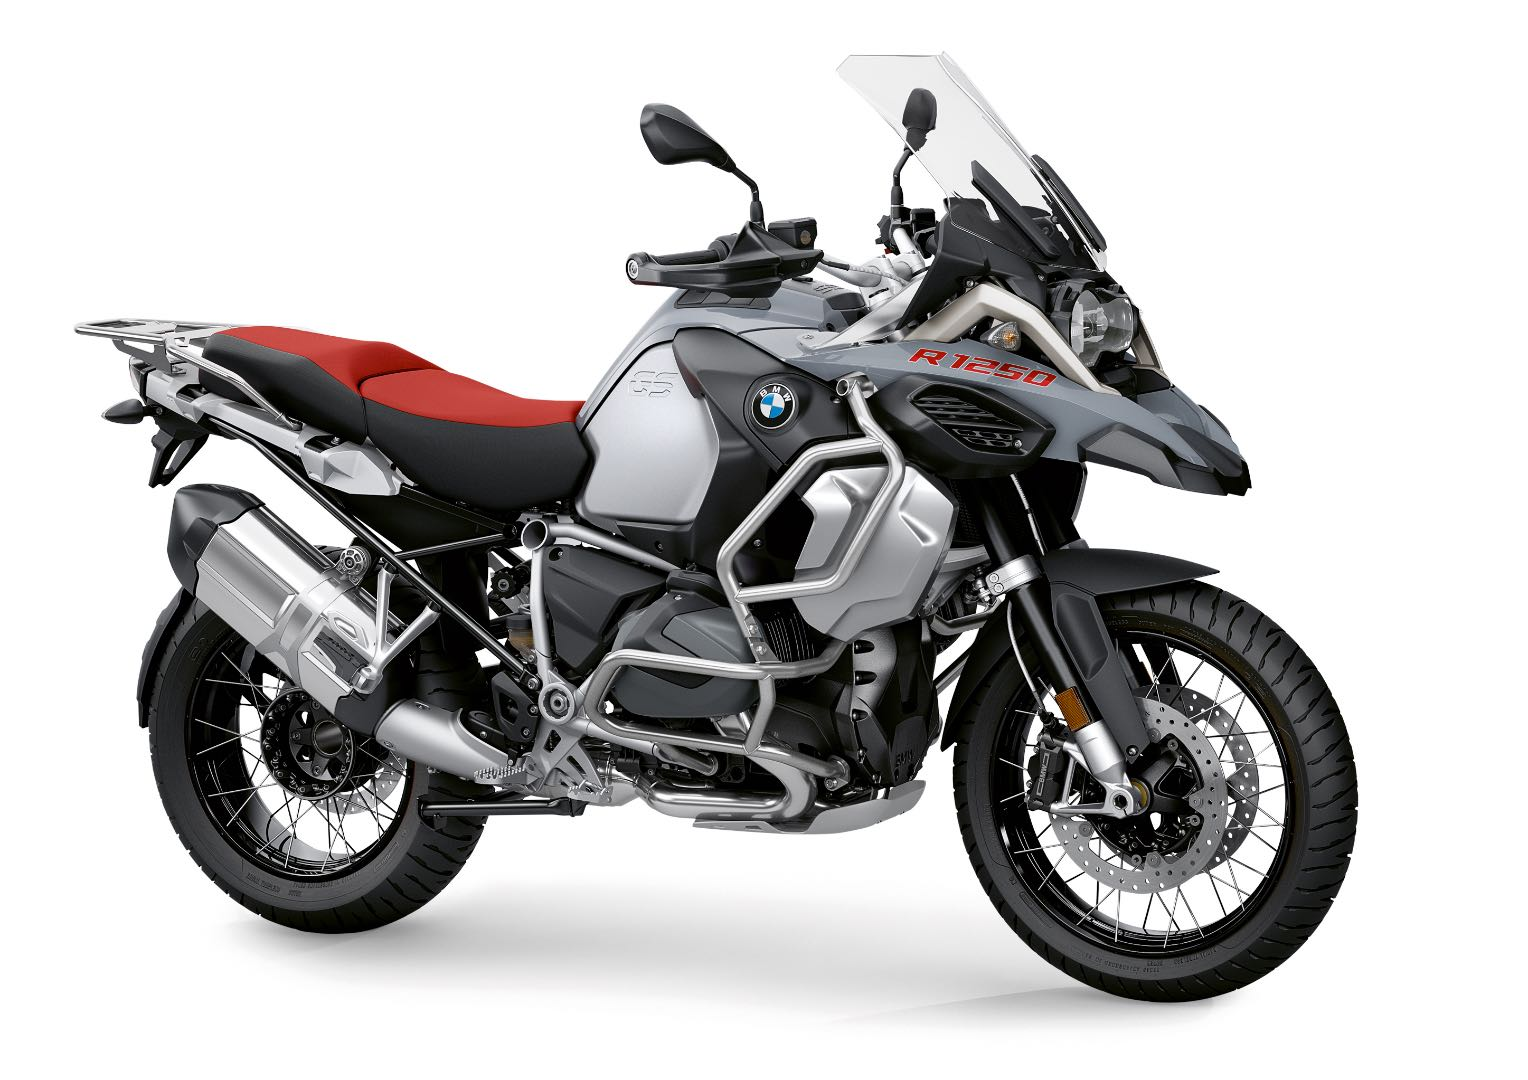 2019 bmw r 1250 gs adventure first look 26 photos. Black Bedroom Furniture Sets. Home Design Ideas